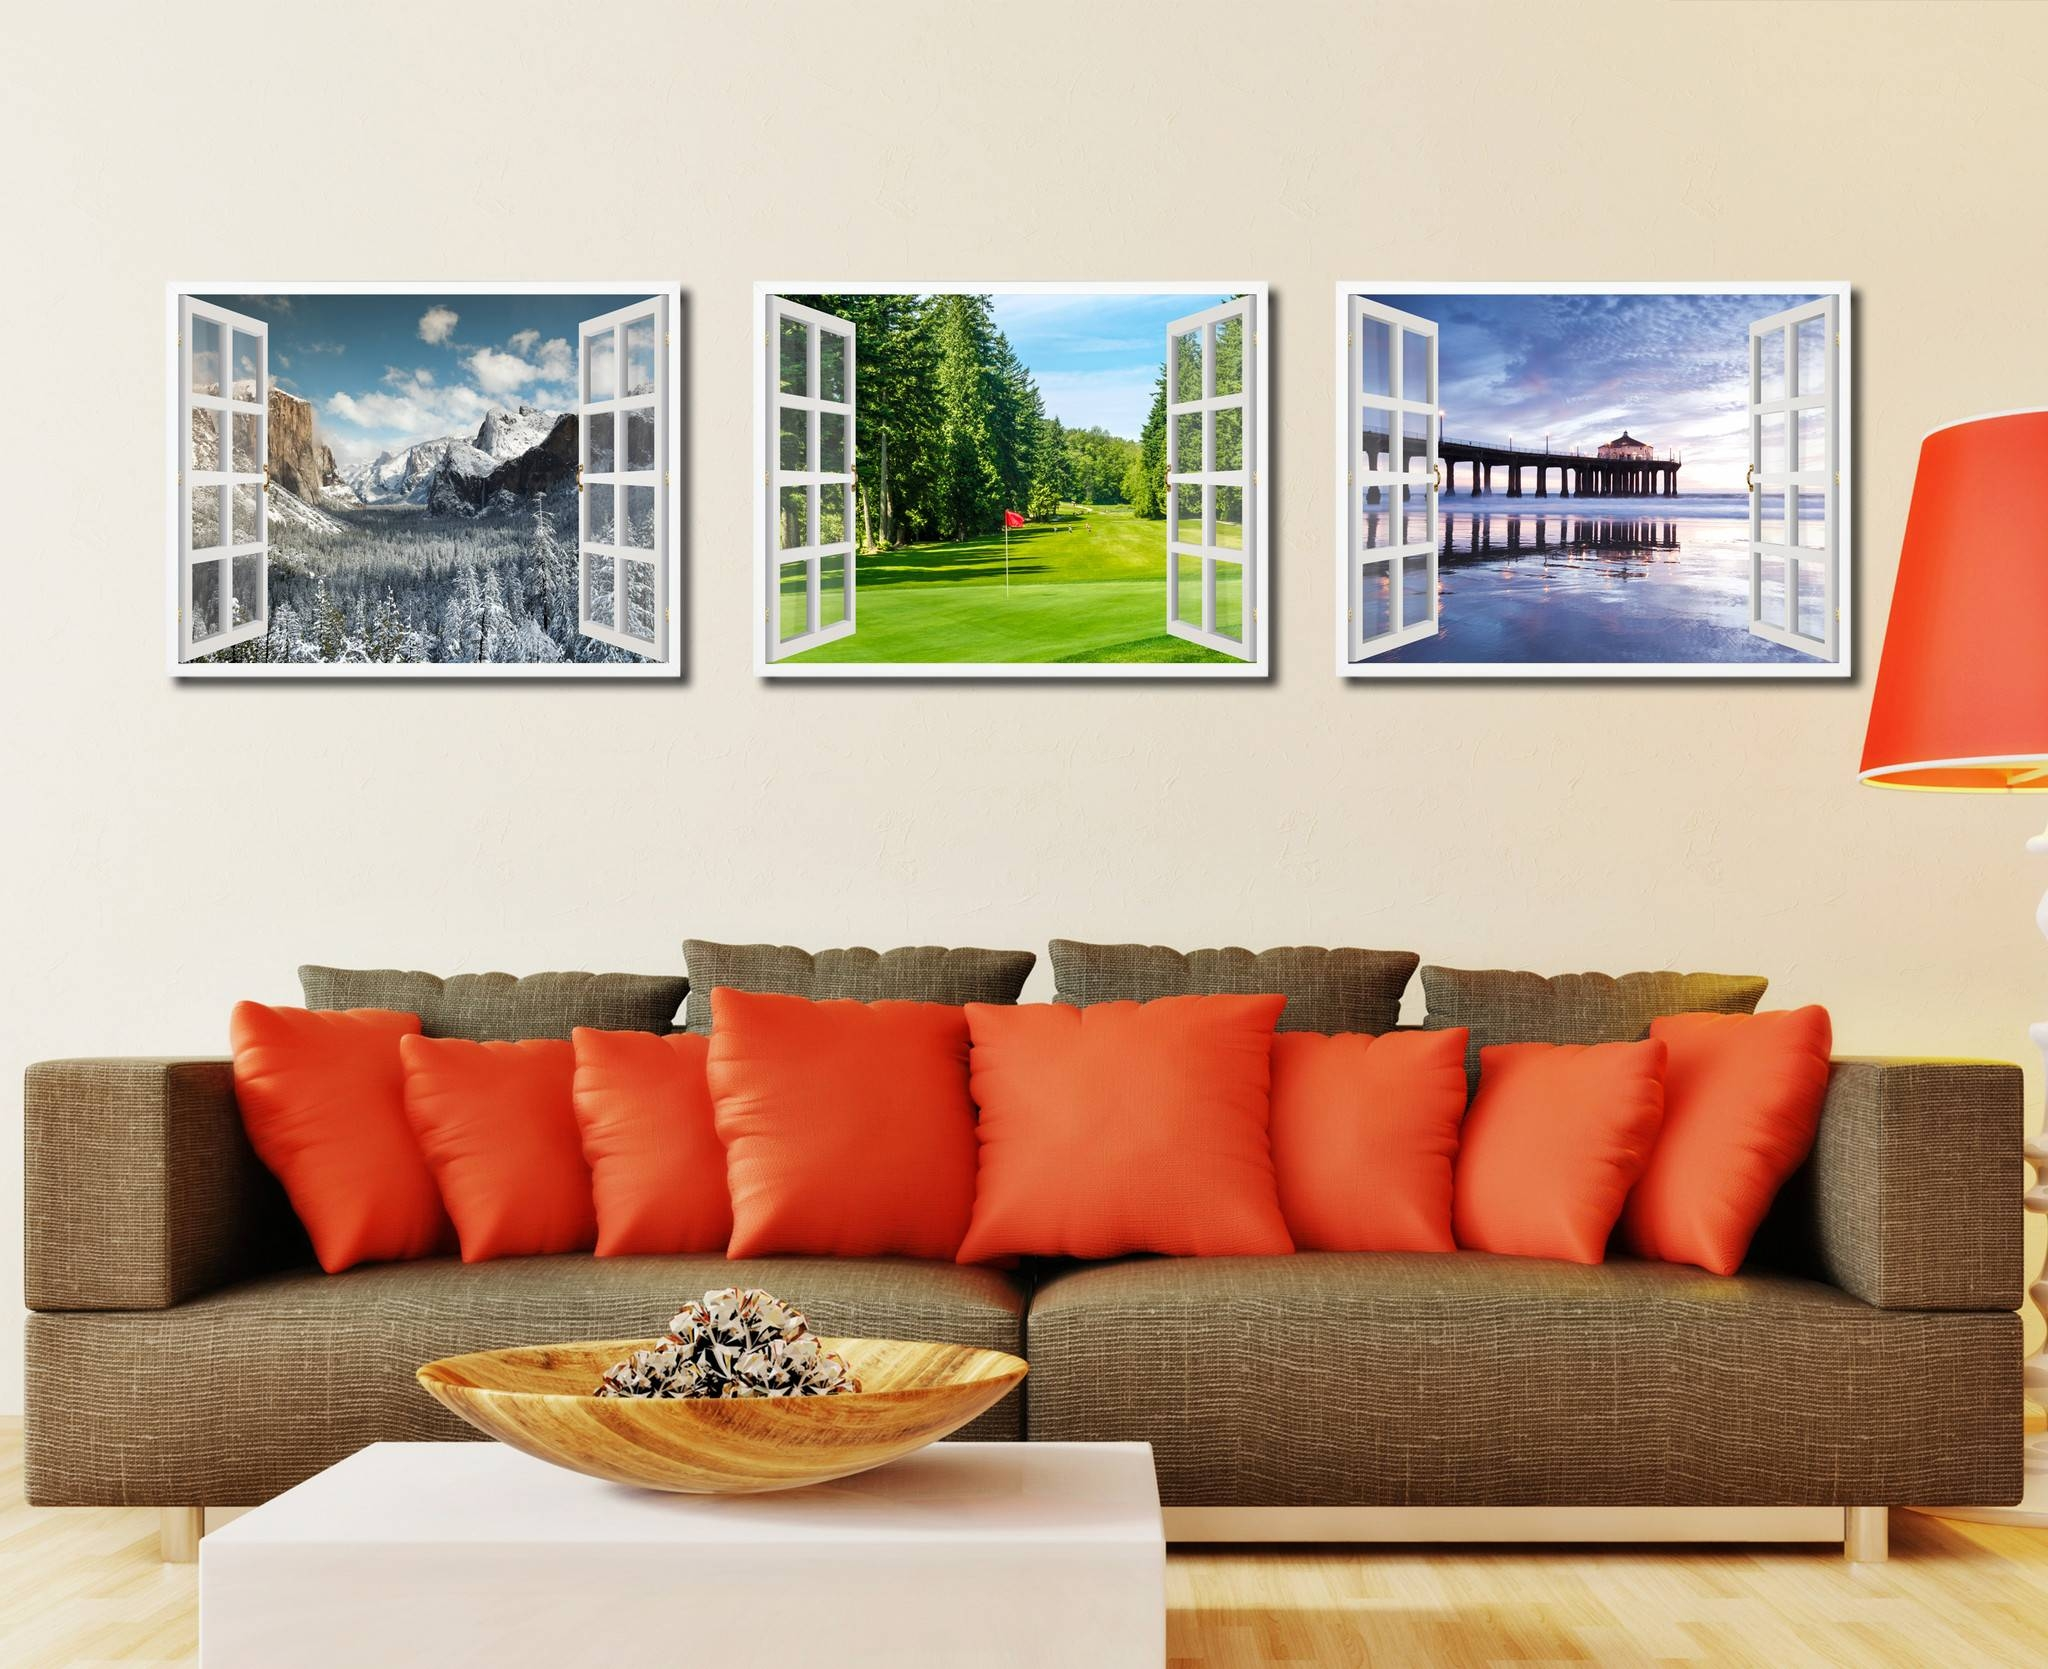 3D Wall Art Vancouver | Wallartideas Intended For Best And Newest Vancouver 3D Wall Art (View 8 of 20)